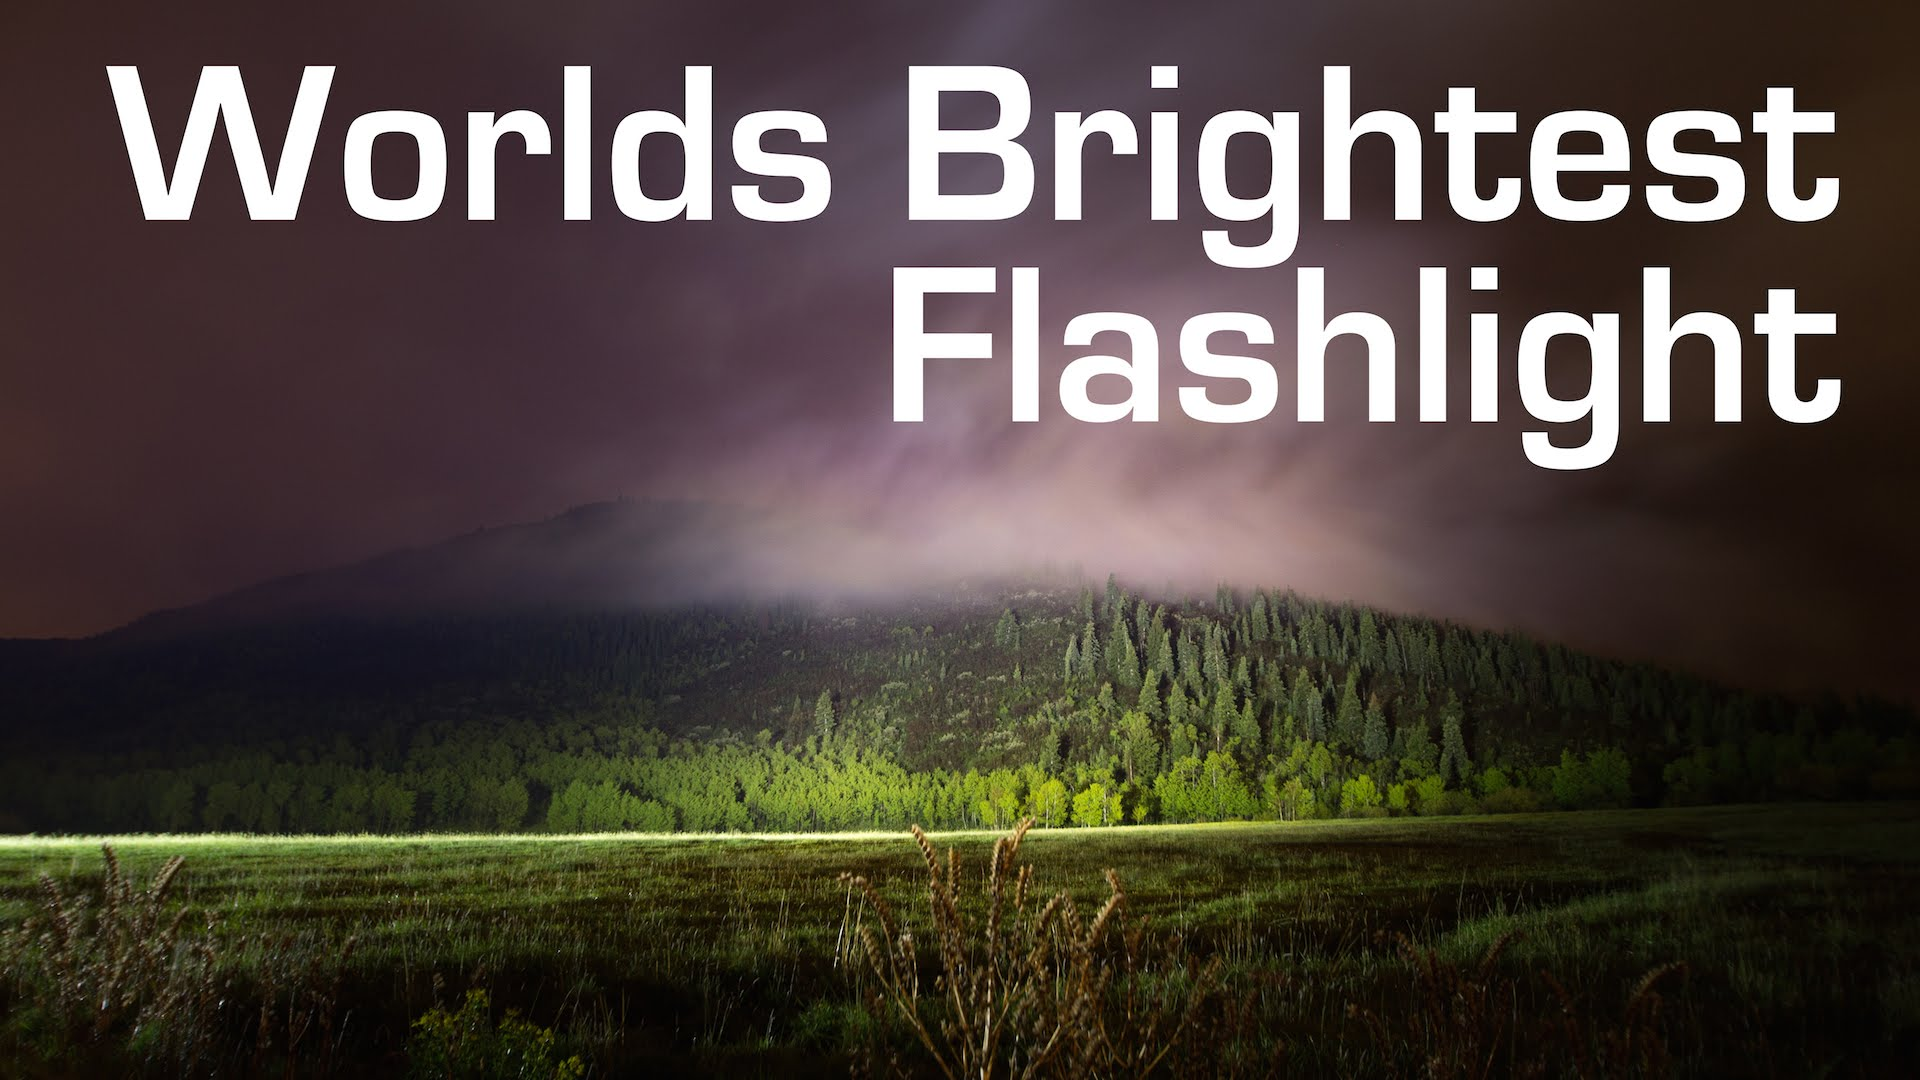 1000W LED Flashlight - Worlds Brightest (90000 Lumens)